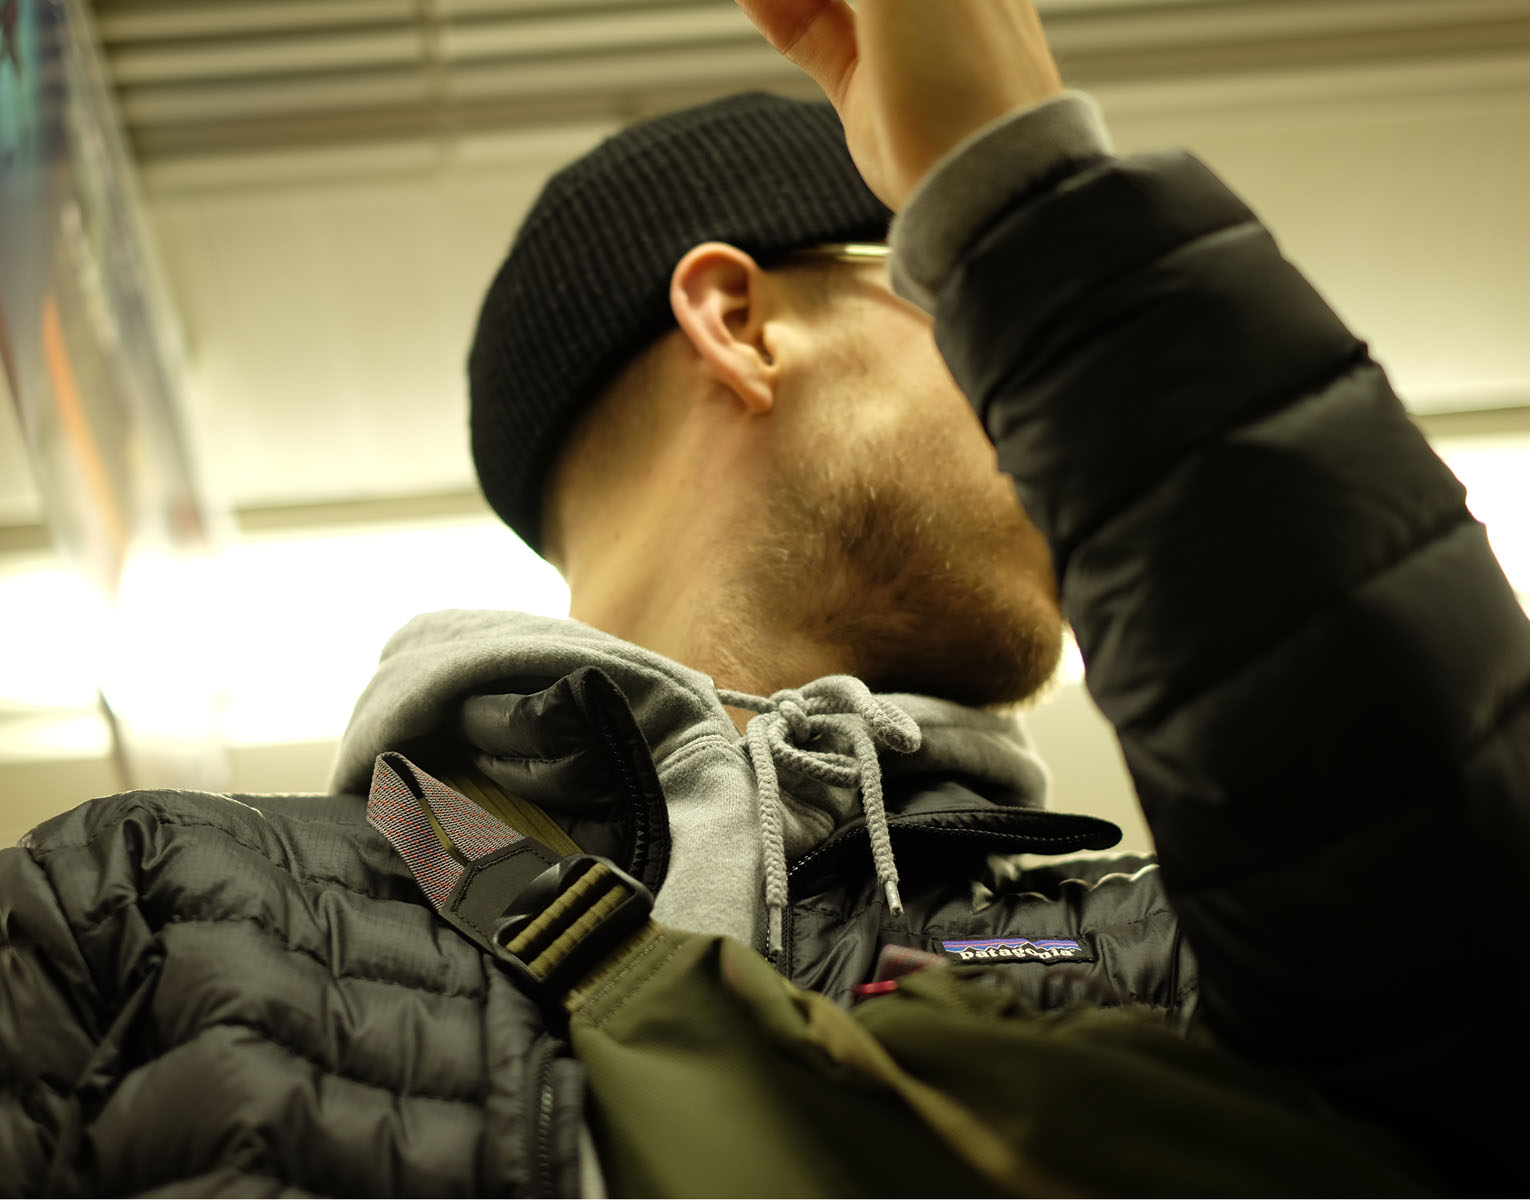 On the subway, Tokyo